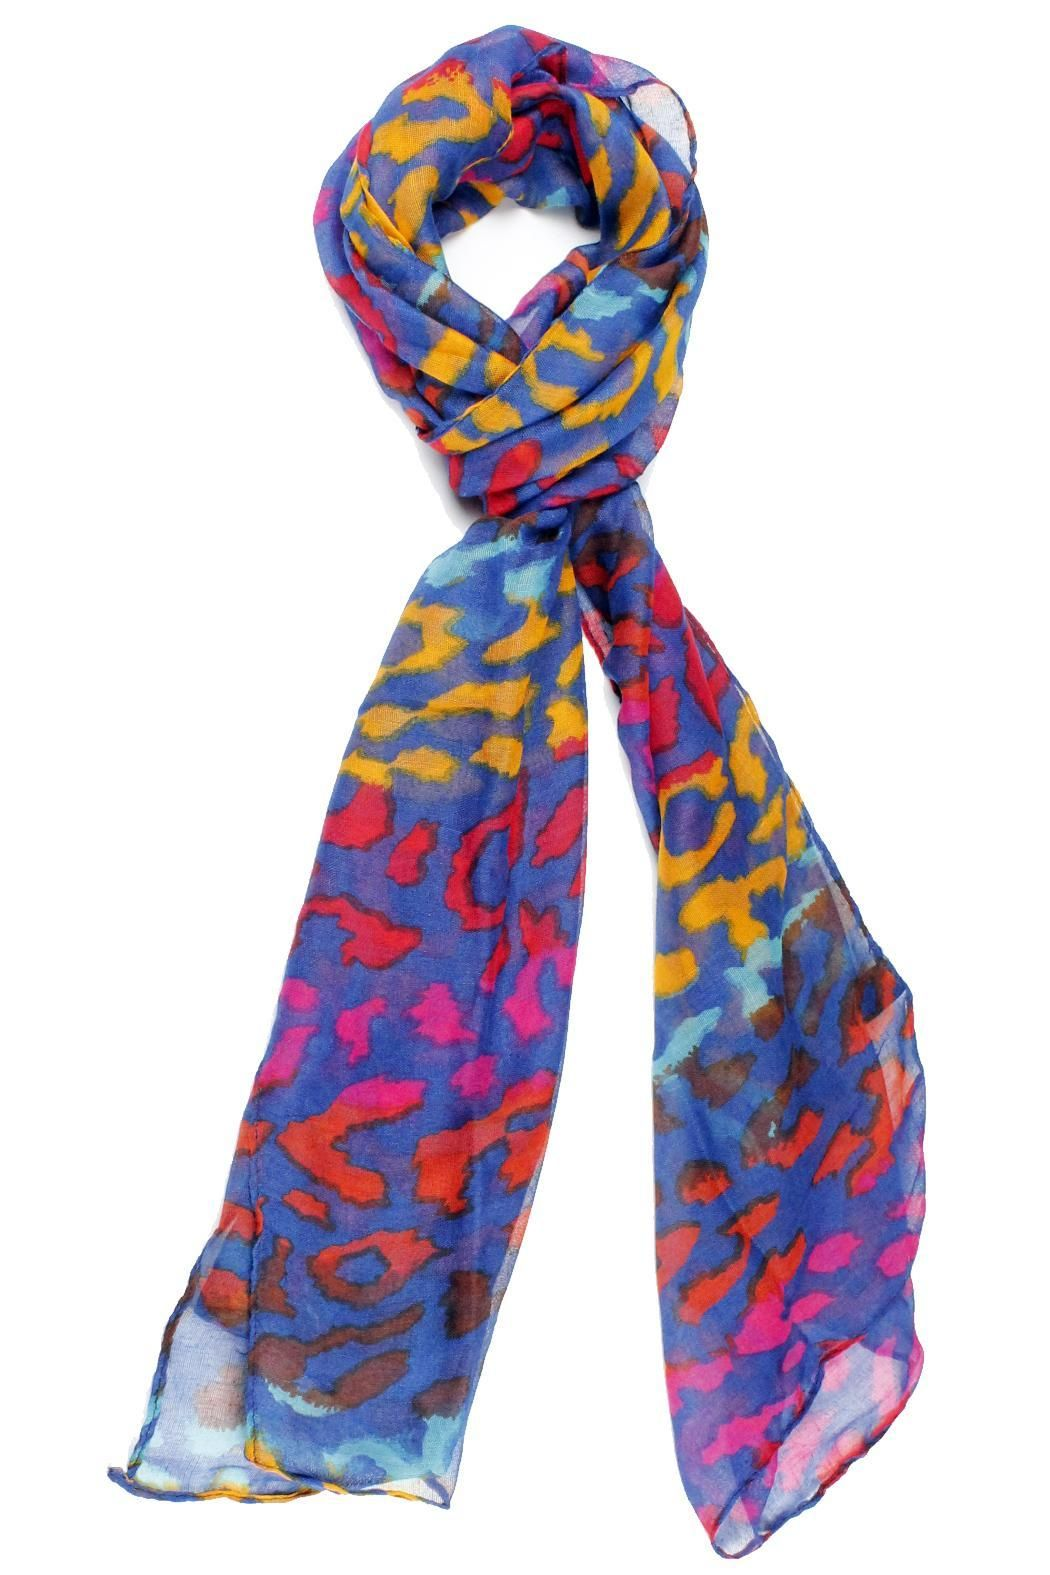 "Colorful, leopard printed scarf in three different colorways.     Measures: 21"" x 66""    Colorful Leopard Scarf by Violet Del Mar. Accessories - Scarves & Wraps San Diego, California"